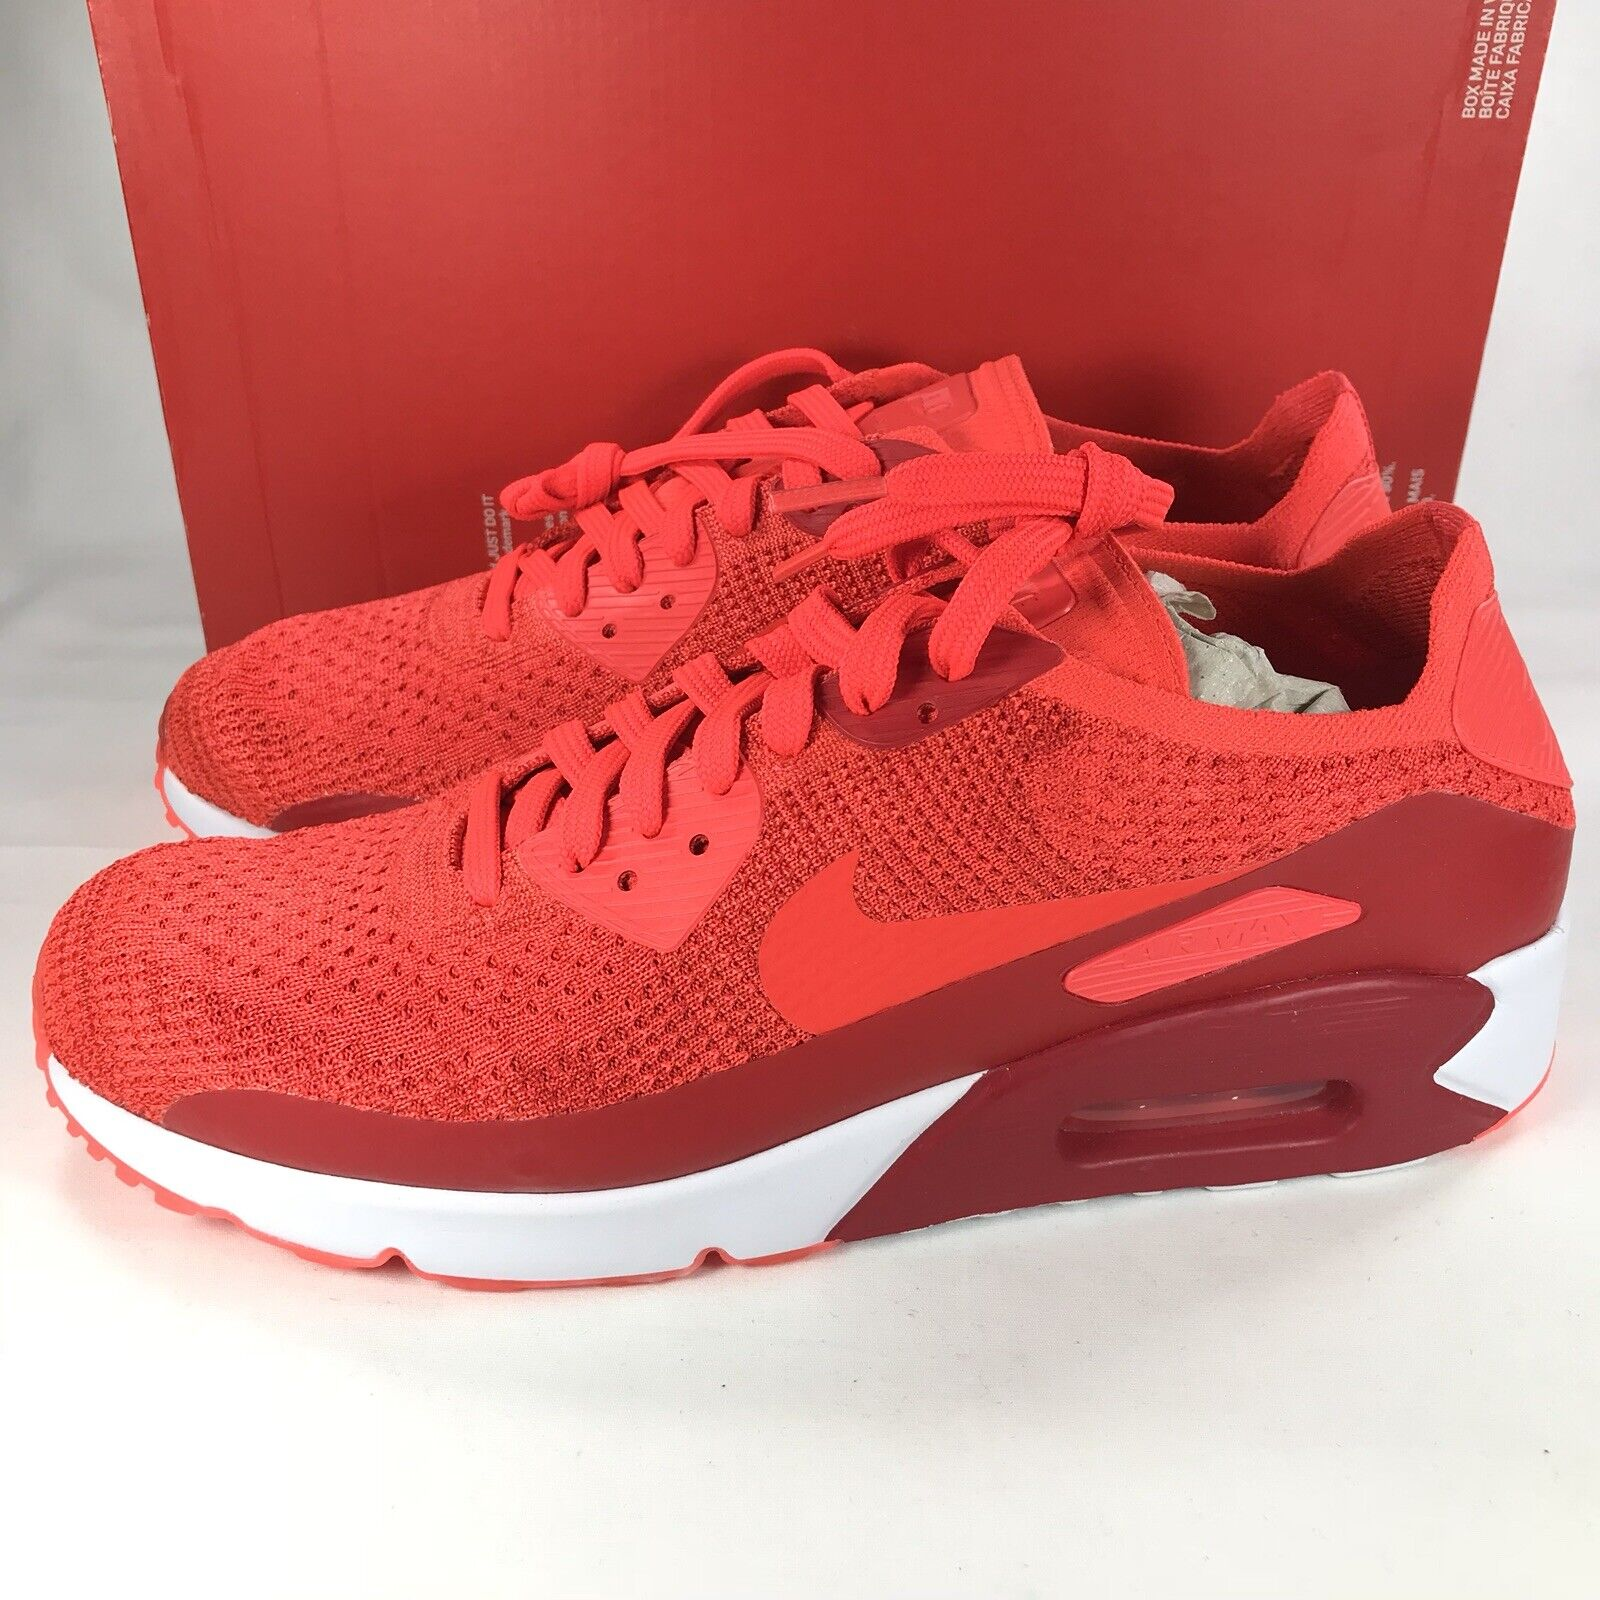 Nike Air Max 90 Ultra 2.0 Flyknit Red Running shoes 875943-600 Men's Size 11.5